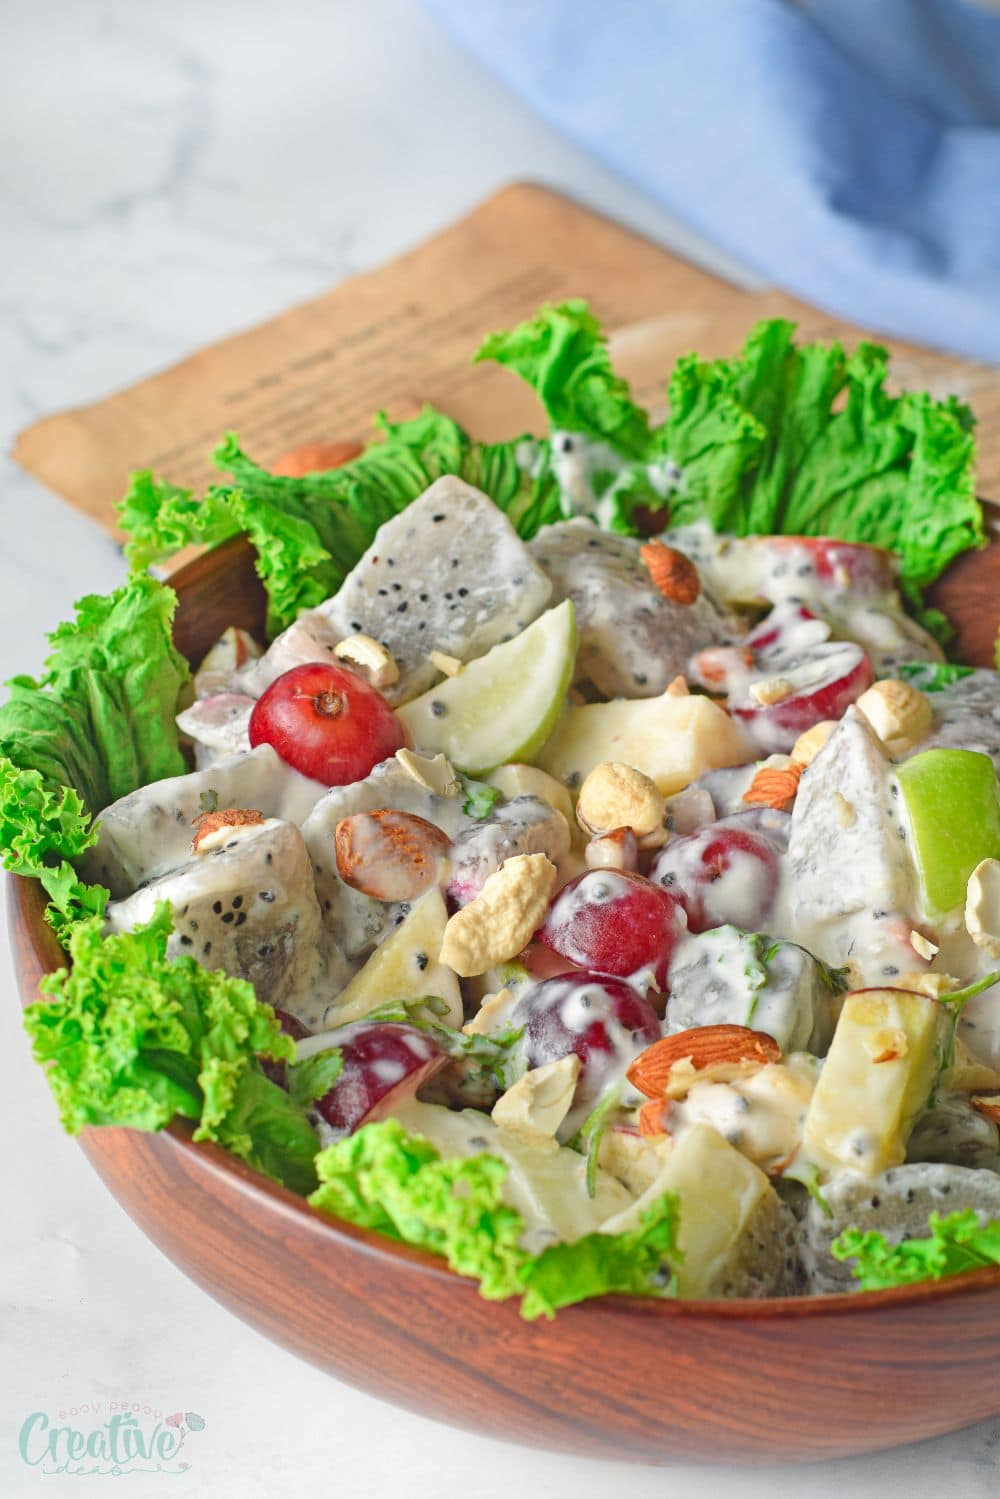 Close up image of Waldorf salad ingredients on a lettuce bed, in a brown salad bowl